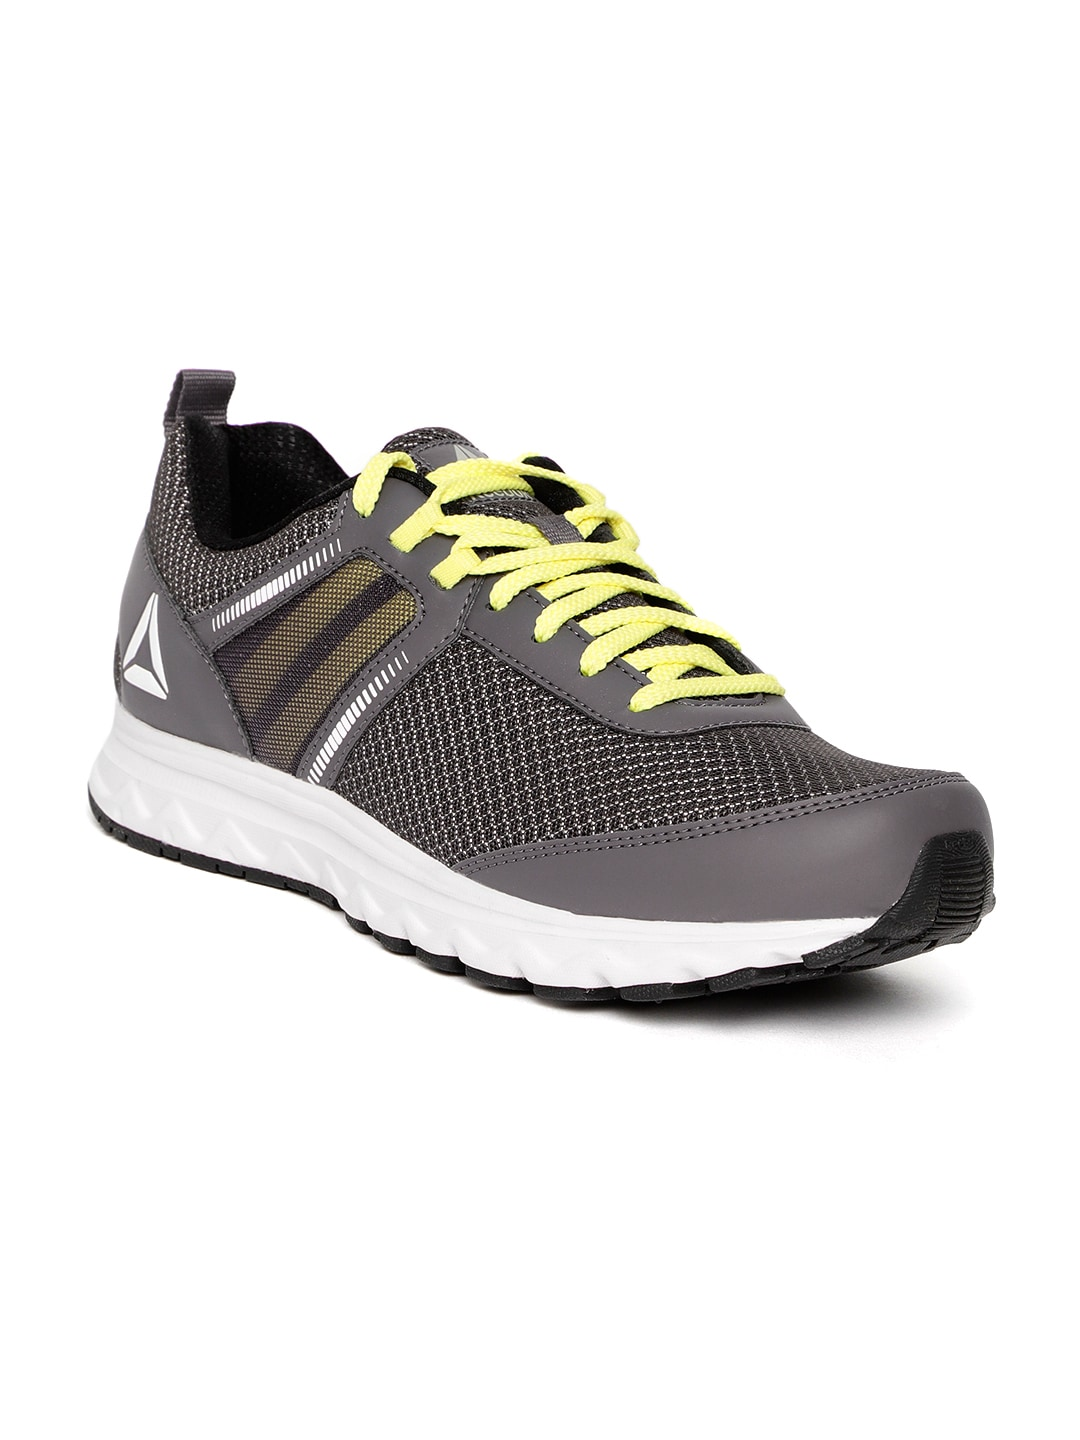 788caba204083 Reebok Sports Shoes - Buy Reebok Sports Shoes in India